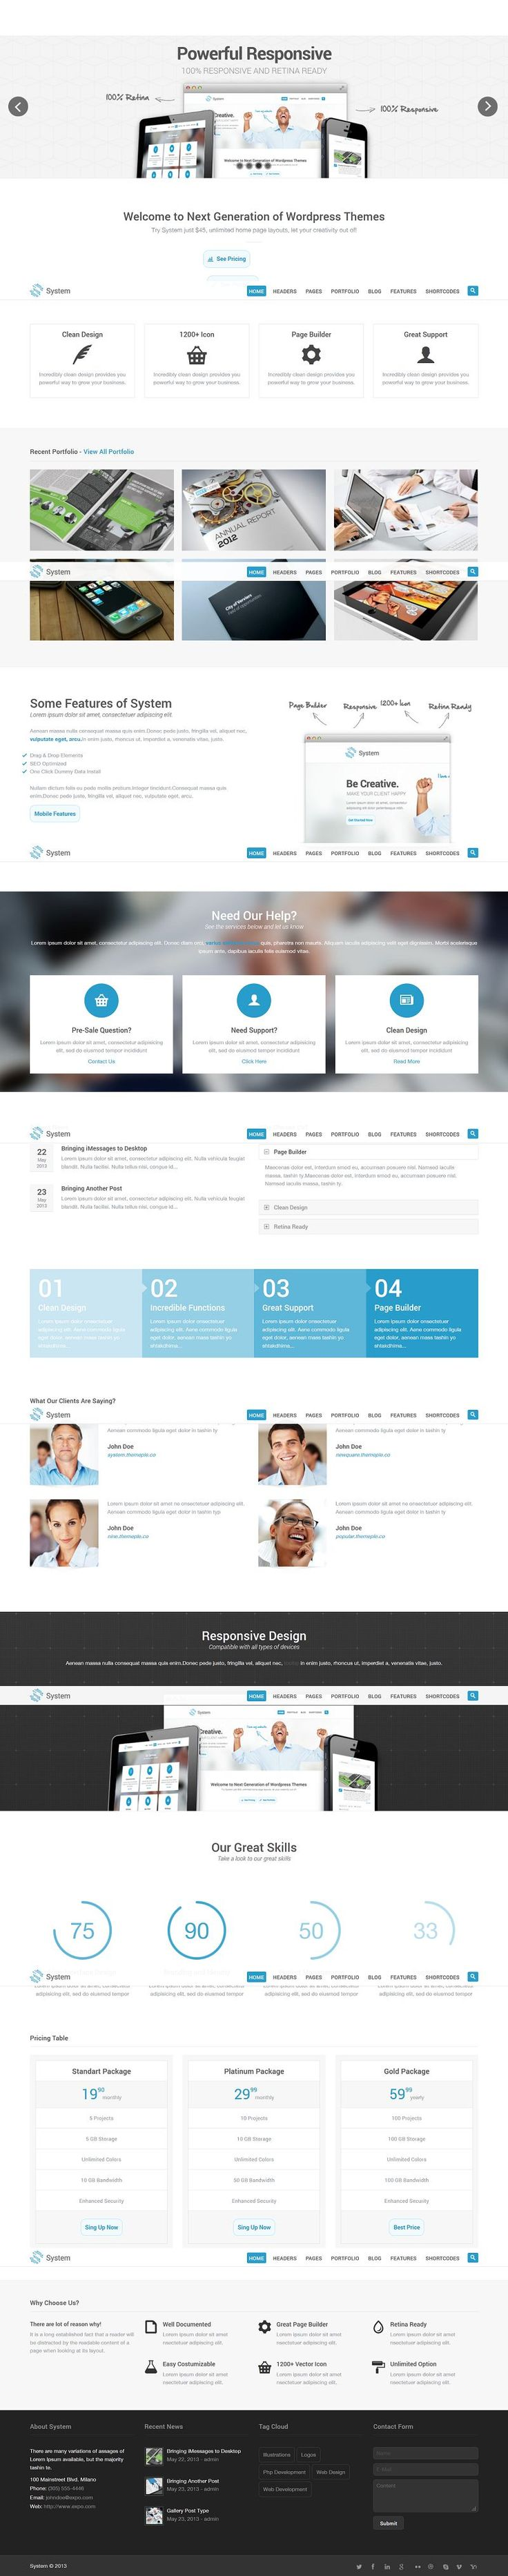 System is a responsive WordPress Theme (try resizing your browser), suited for business websites and users who want to showcase their work o...